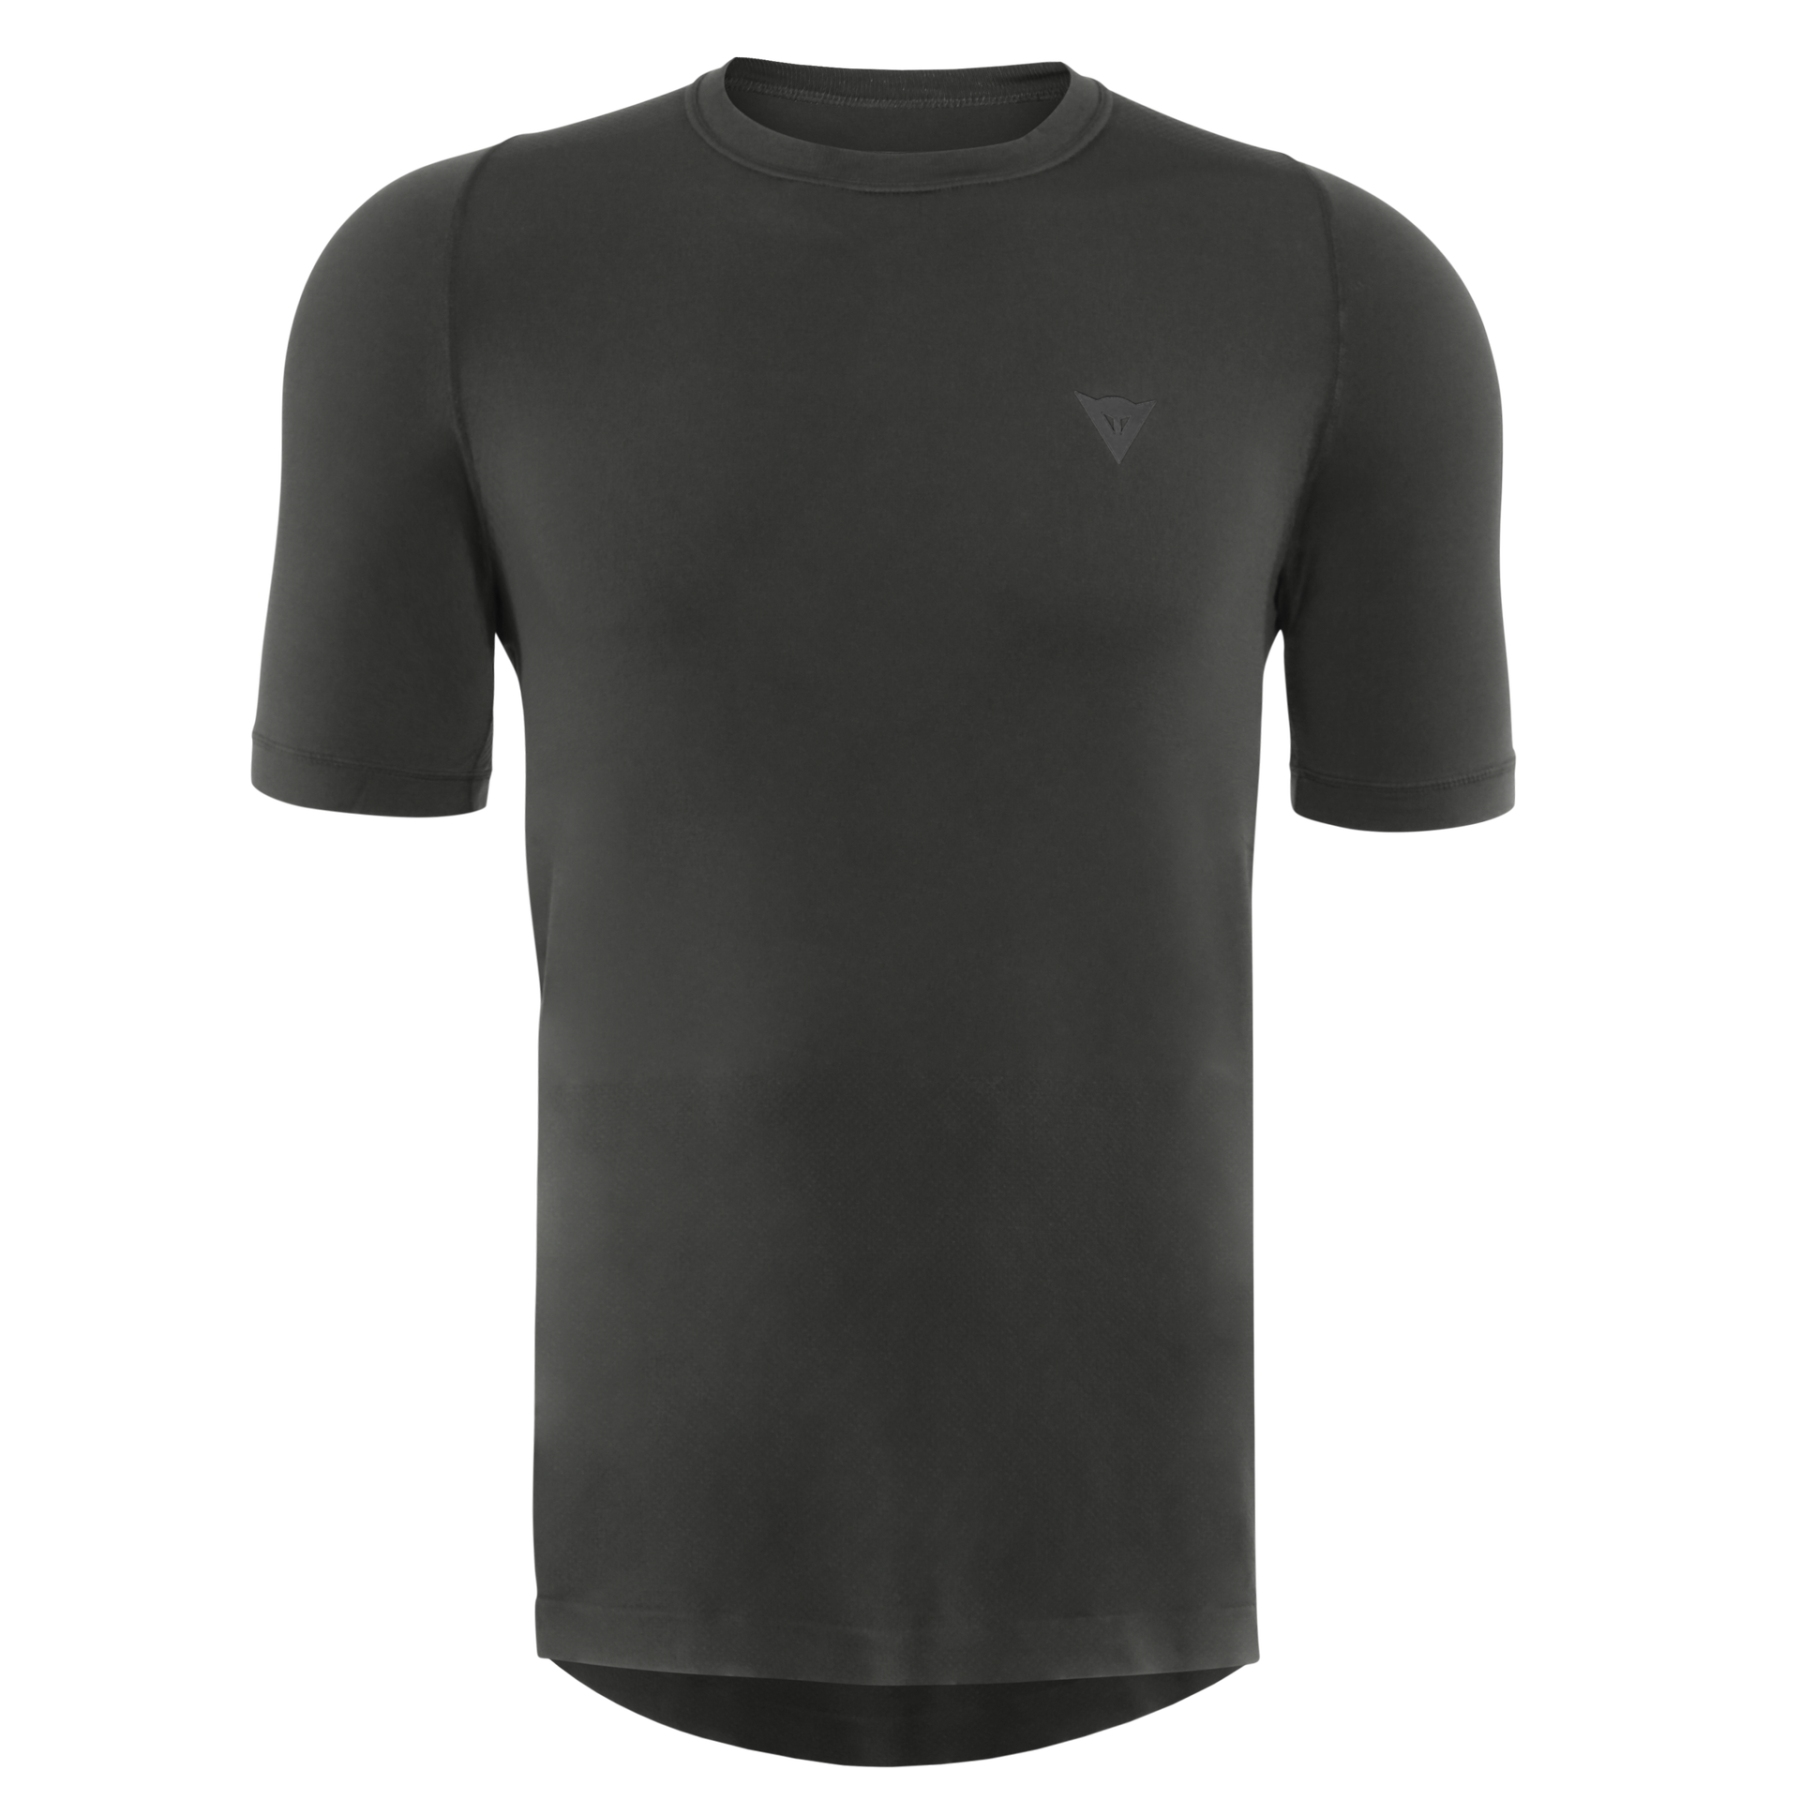 Picture of Dainese HGL Baciu MTB Shortsleeve Jersey - anthracite